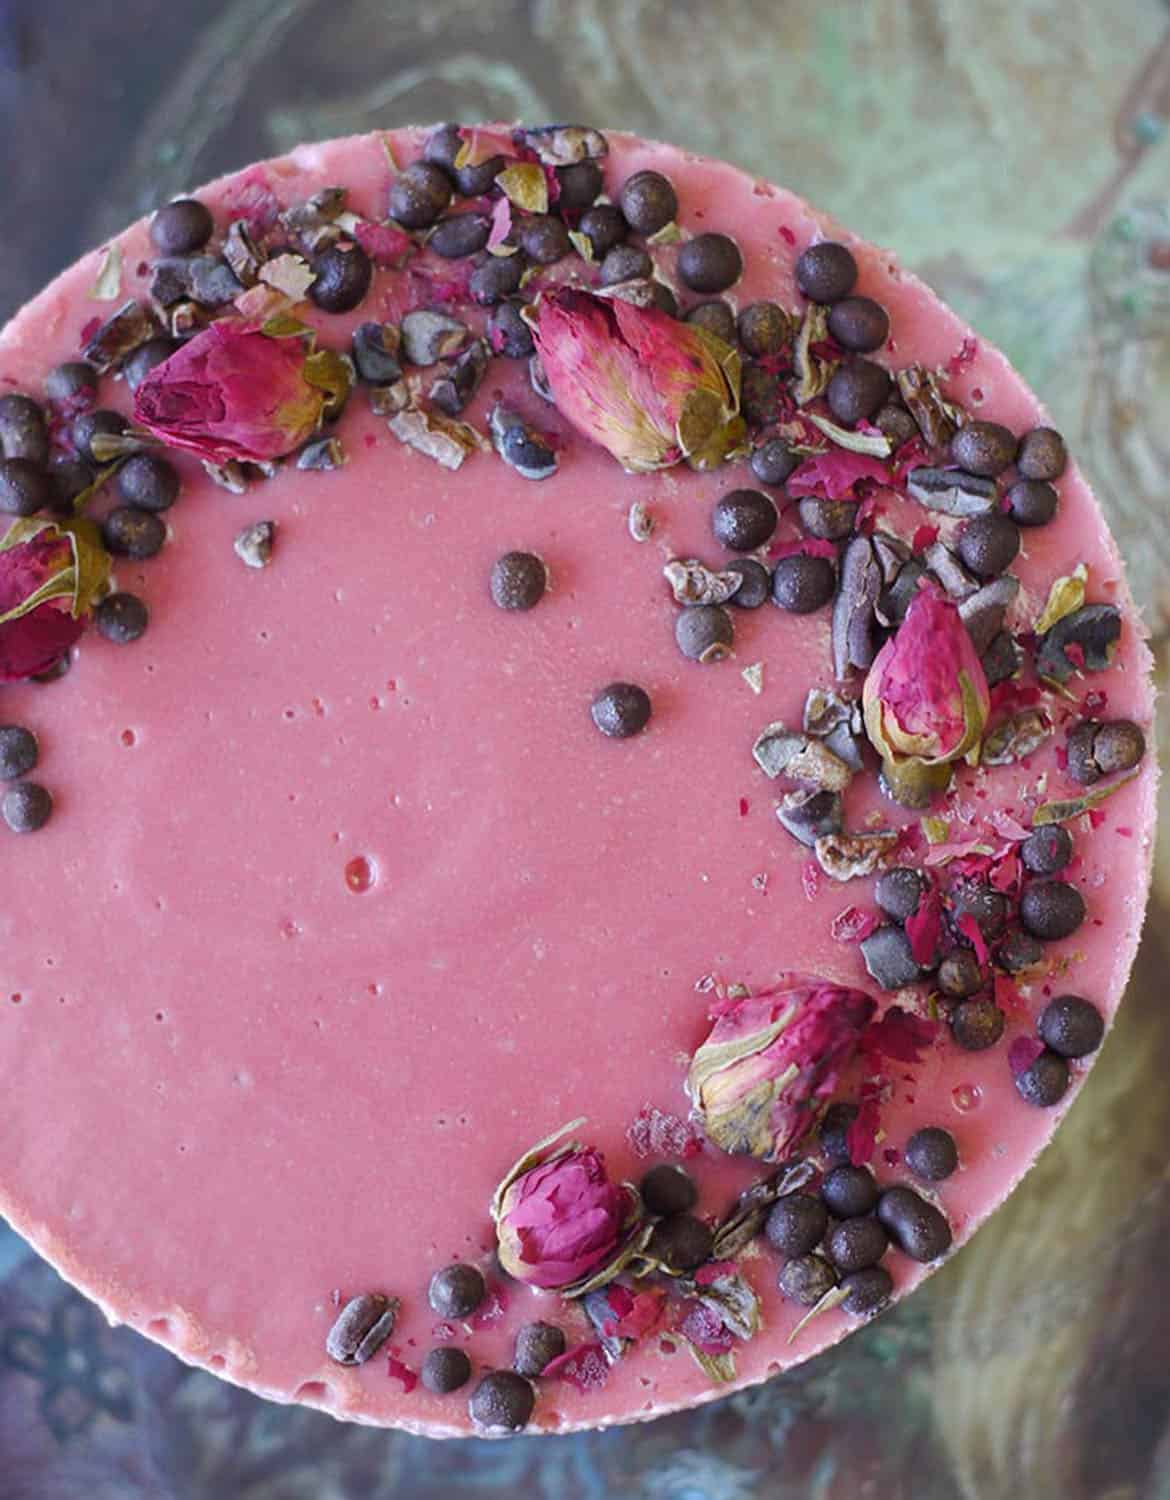 Vegan CHOCOLATE BEET CHEESECAKE decorated with dried roses and chocolate chips - Unconventional Baker